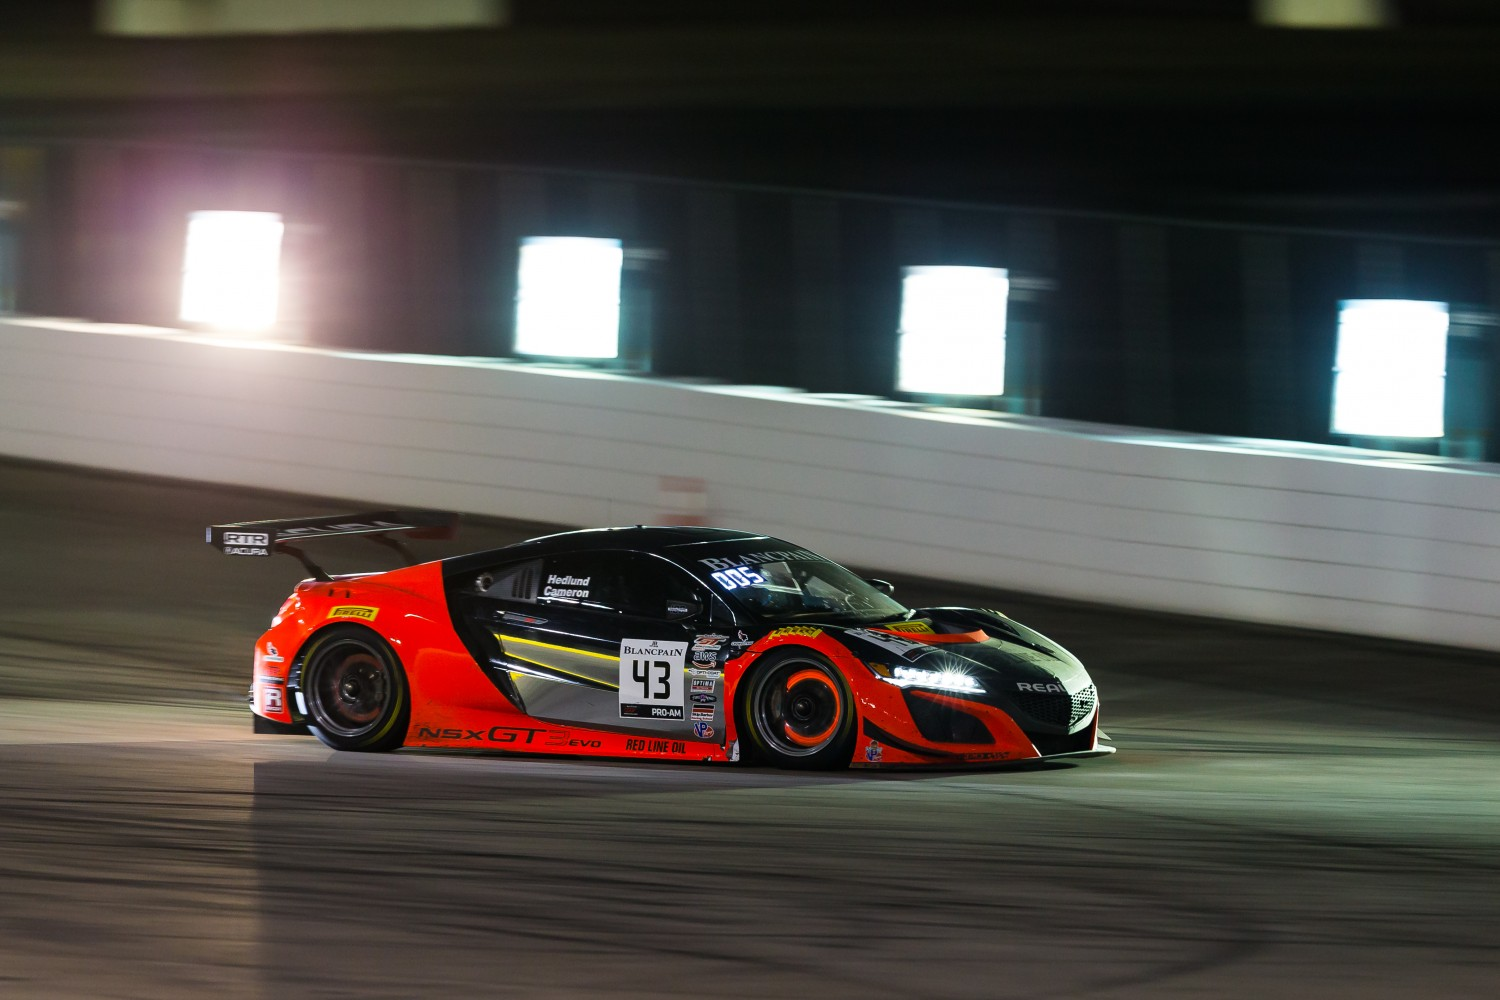 #43 Acura NSX of Mike Hedlund and Dane Cameron with RealTime Racing  2019 Blancpain GT World Challenge America - Las Vegas, Las Vegas NV